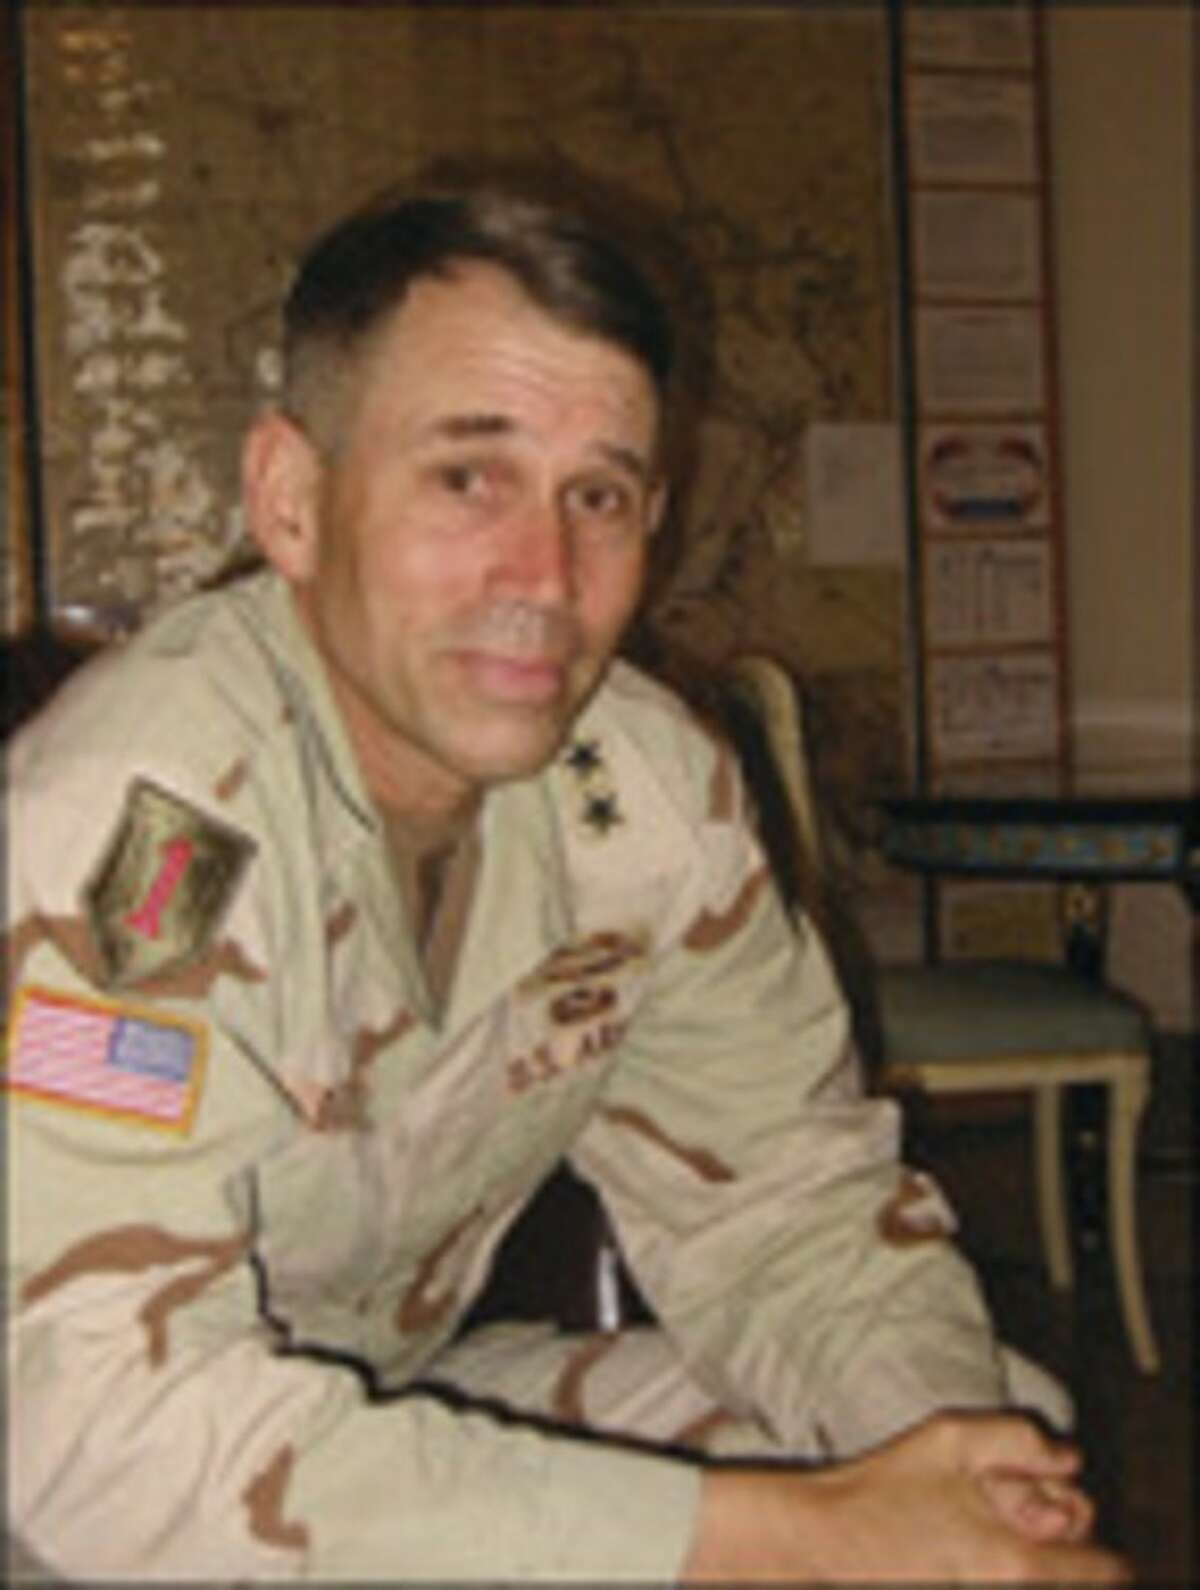 FO/TIKRIT 7/15/04 by Doug Struck/twp - Portrait- Major General John R. S. Batiste, commander of the First Infantry Division, believes his troops are having success in Tikrit by combining tough approach with